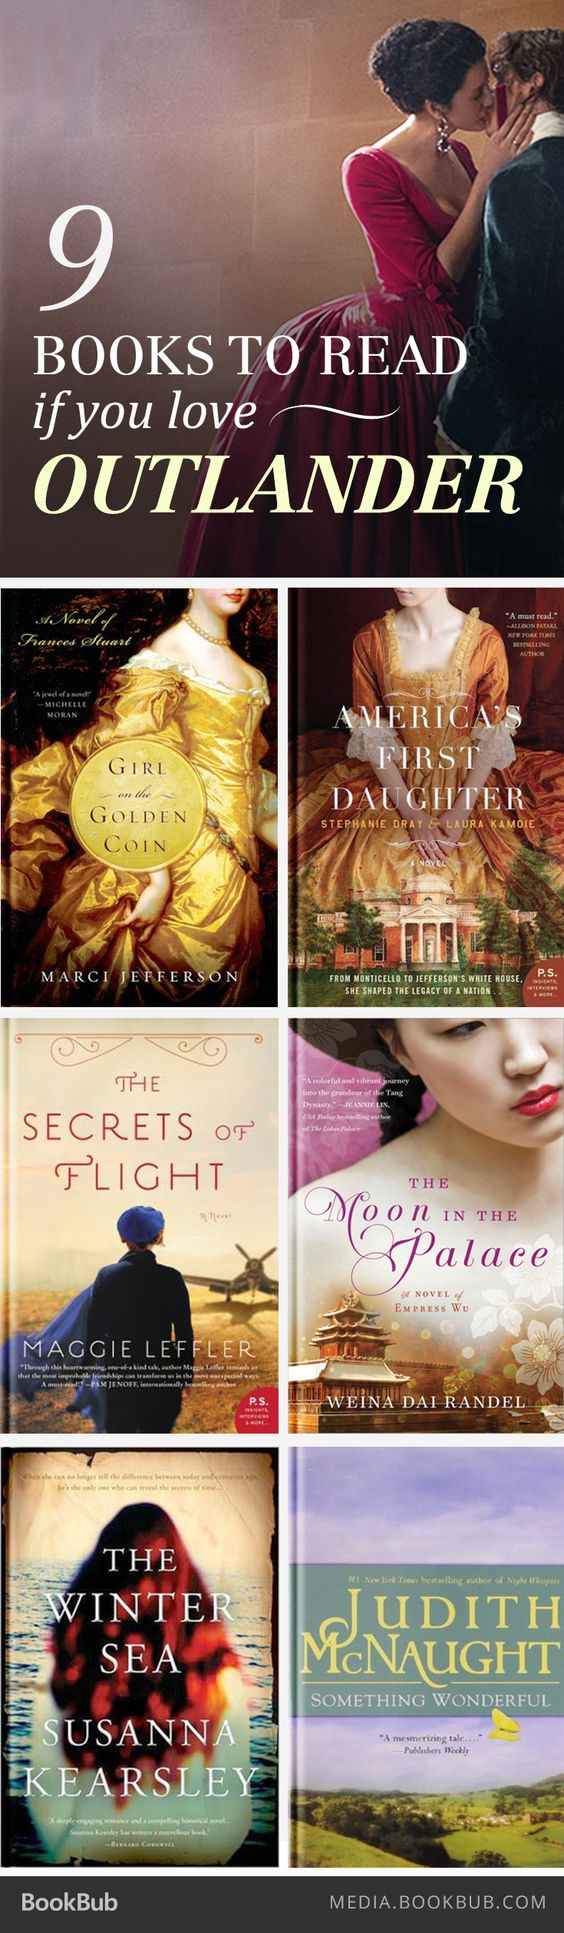 If you love Diana Gabaldon's Outlander, check out these 9 outstanding book recommendations.